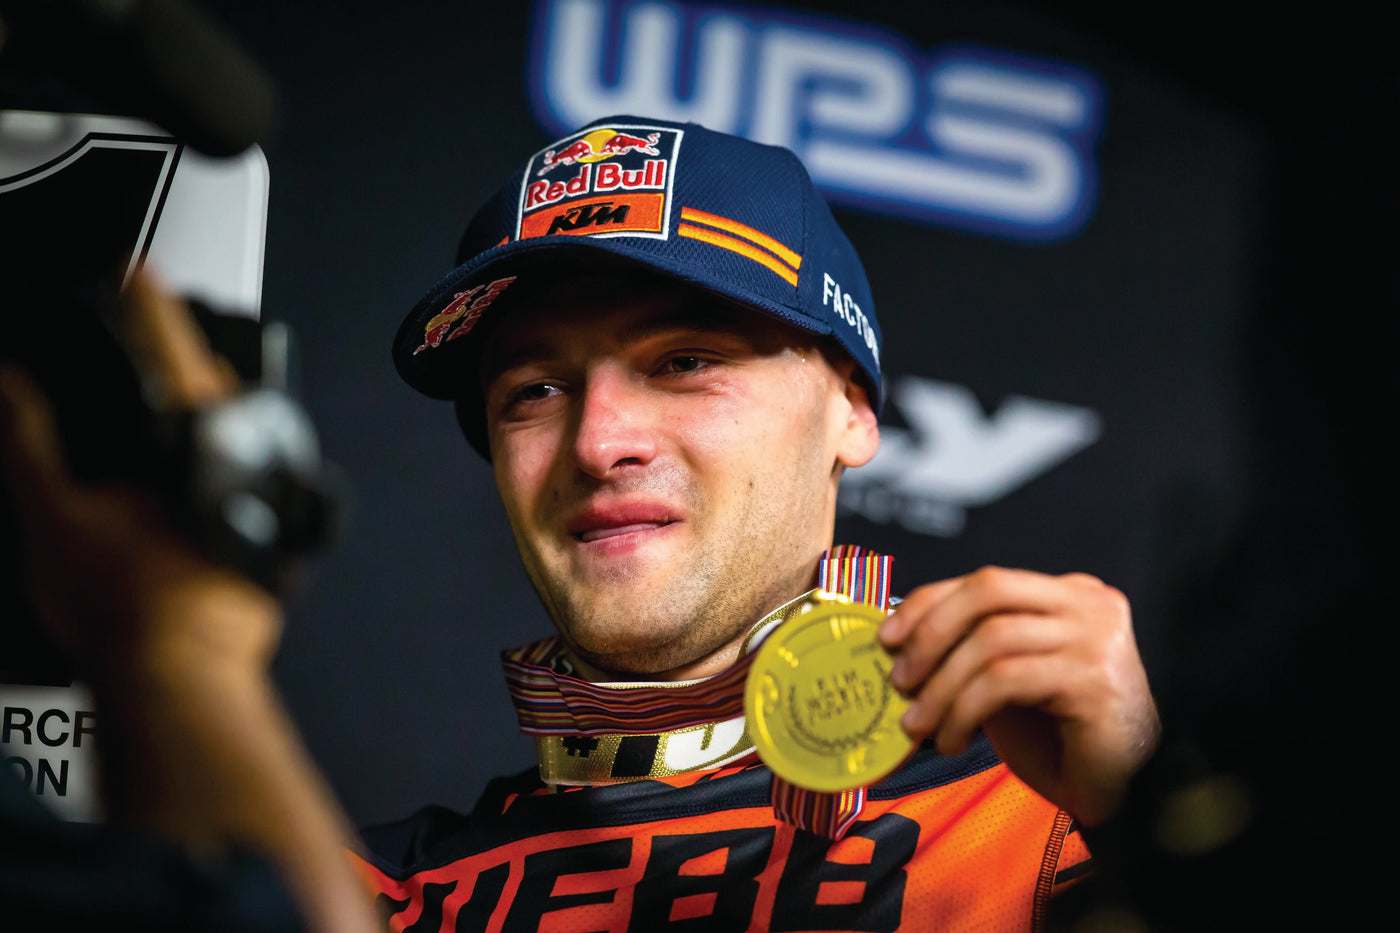 Cooper Webb displays gold medal